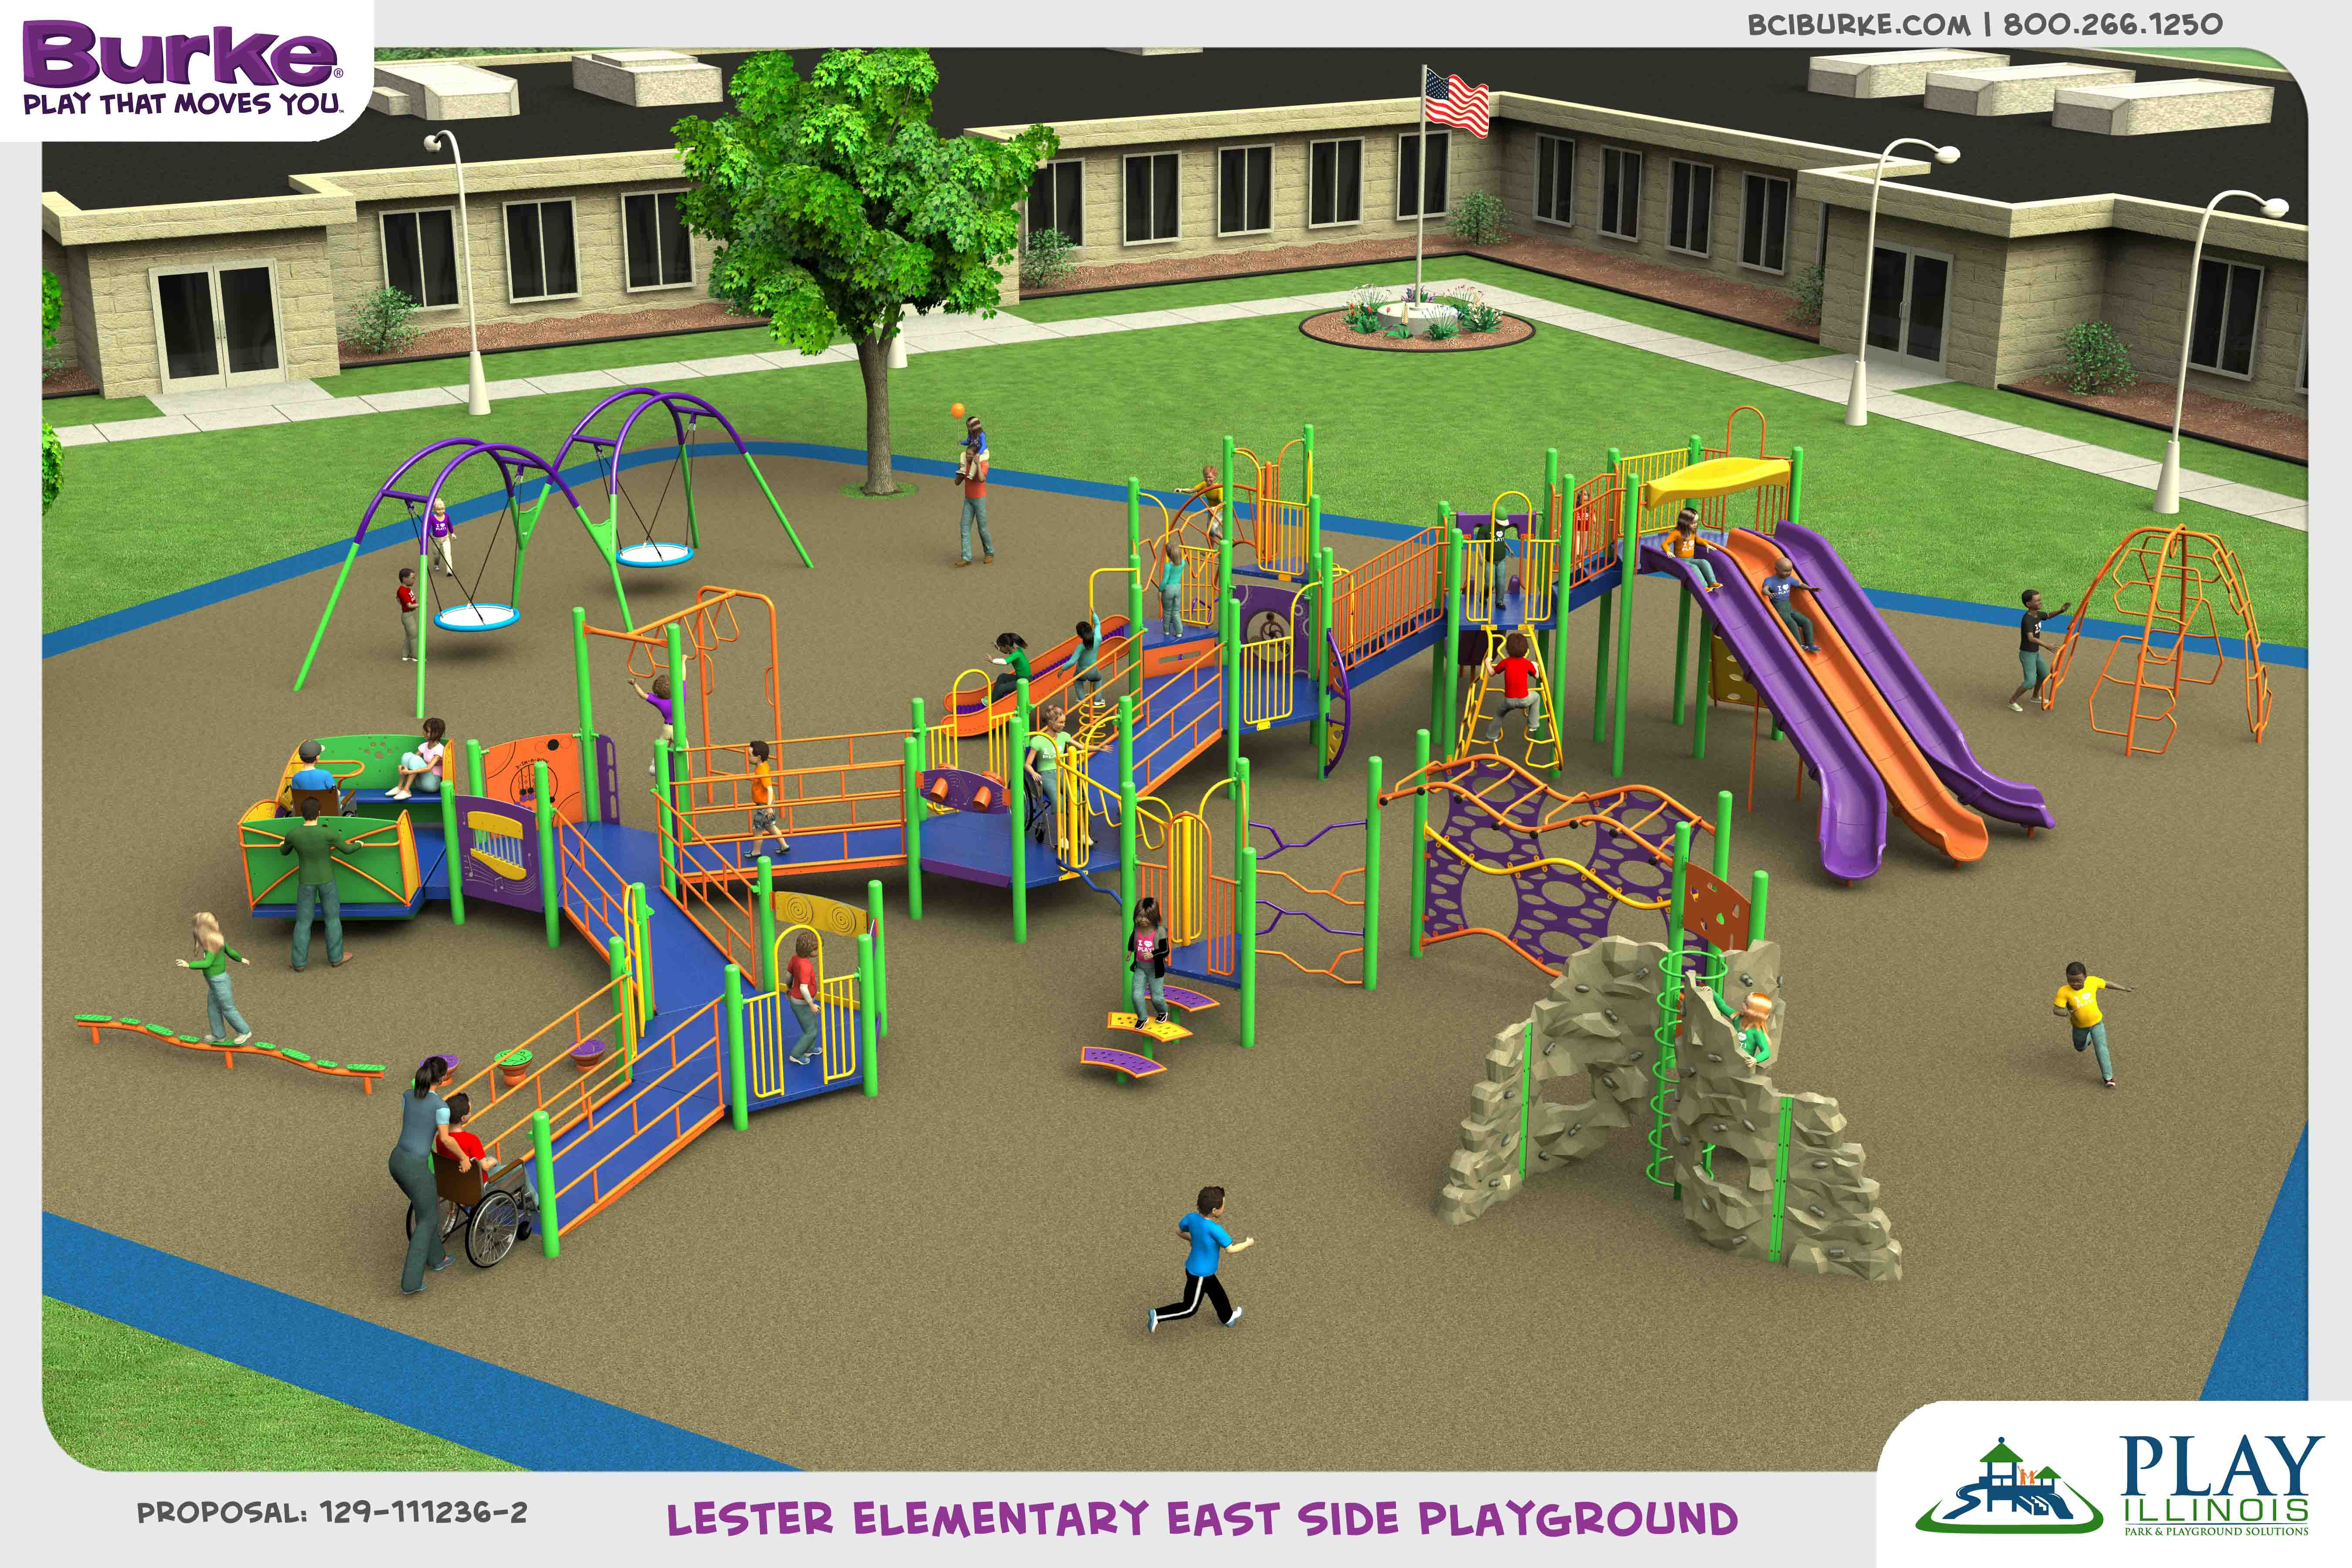 129-111236-2A-copy_MC_LesterElementar dream build play experience accessible playgrounds